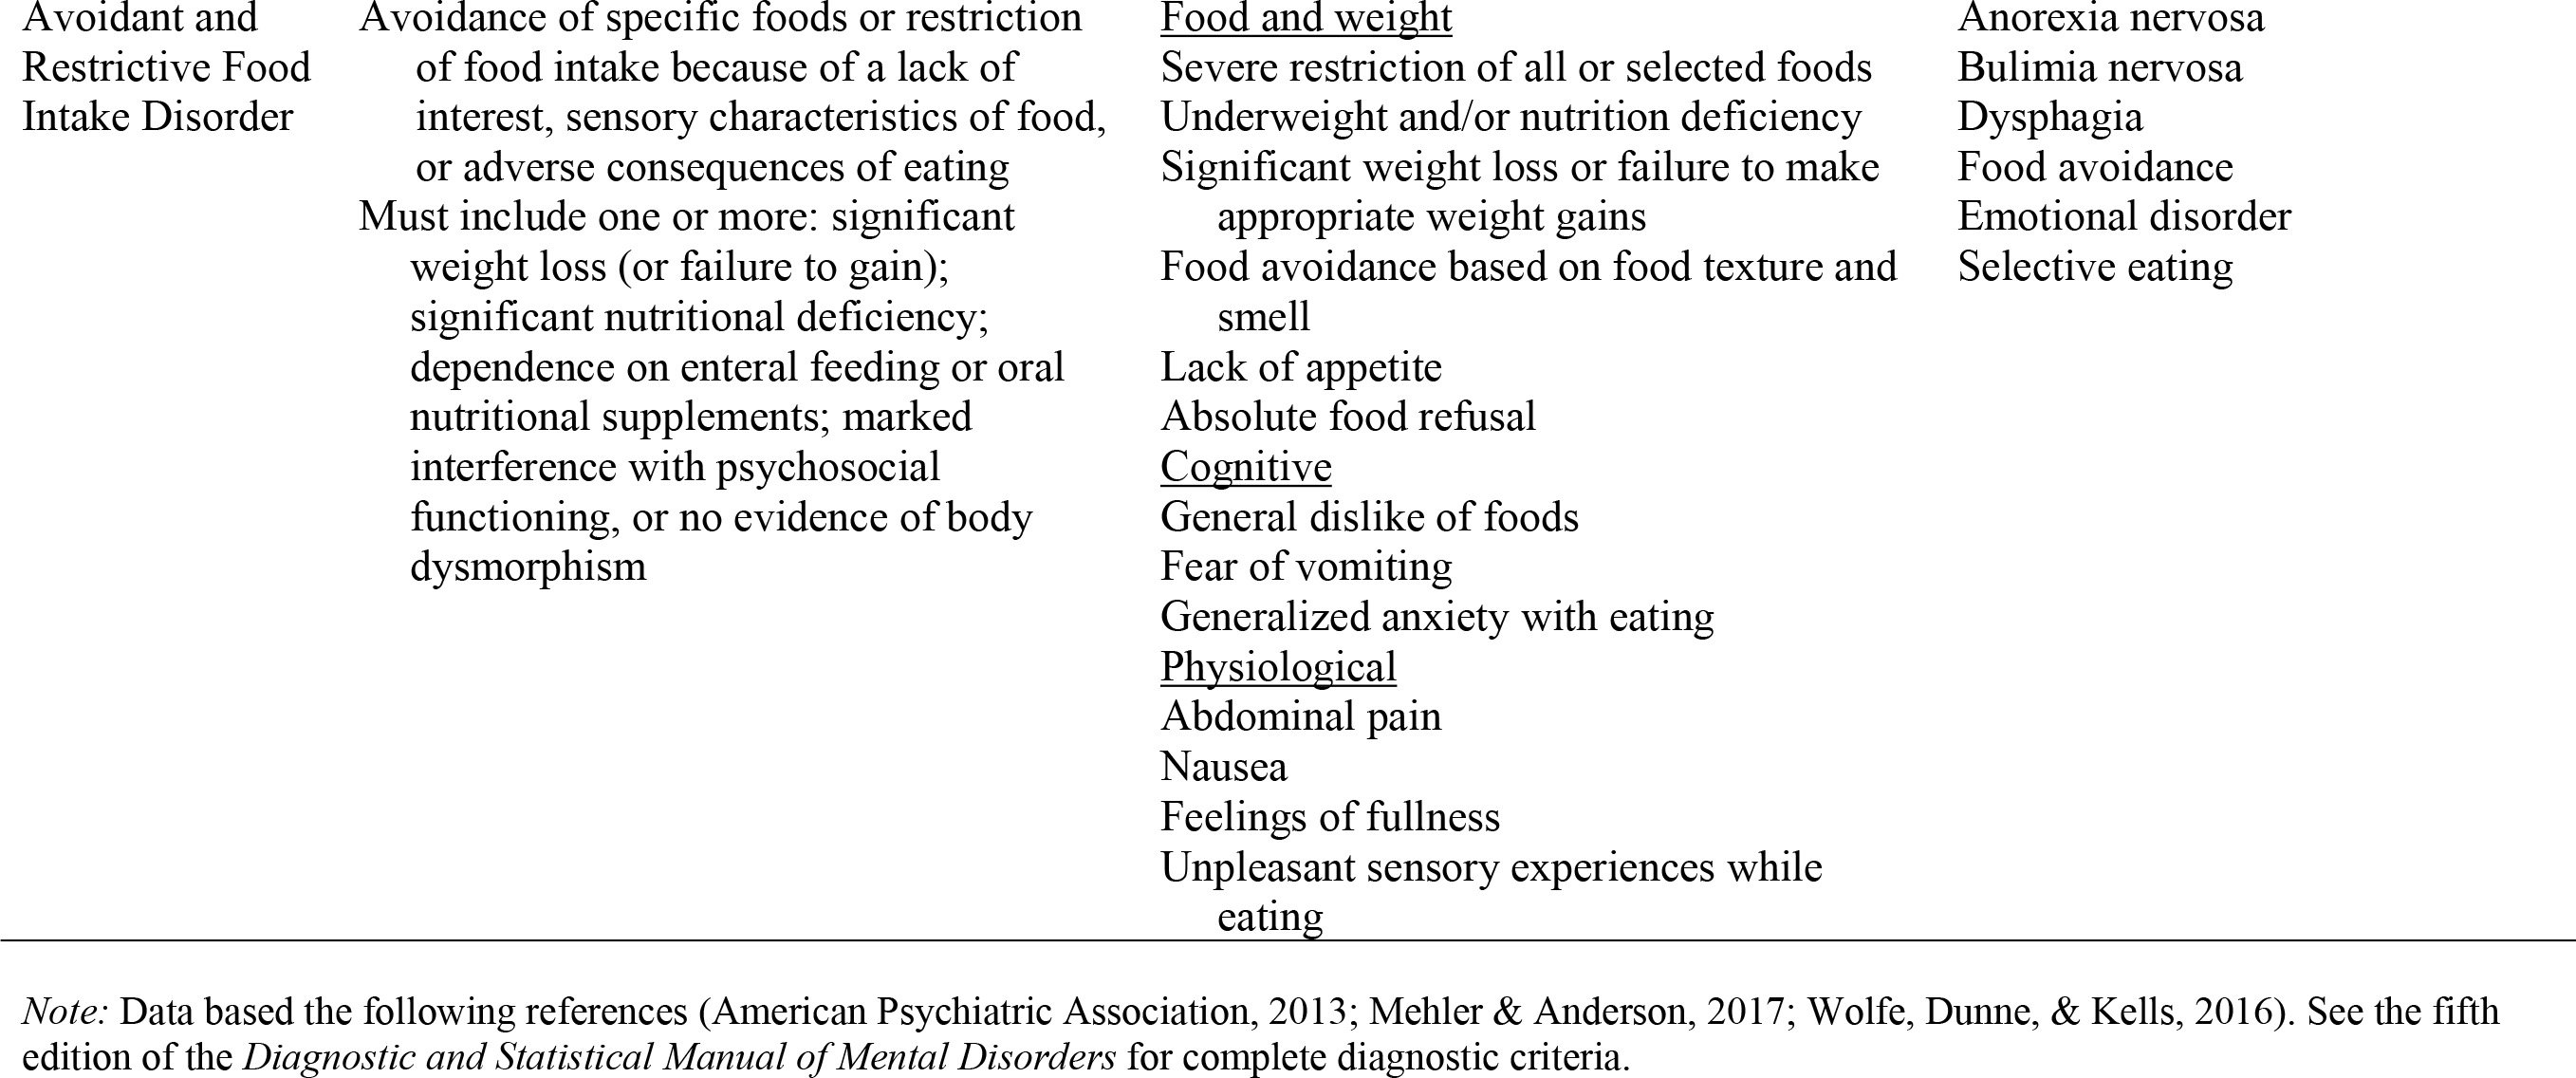 Criteria, Clinical Presentation, and Common Differential Diagnoses for Primary DSM-5 Eating Disorders